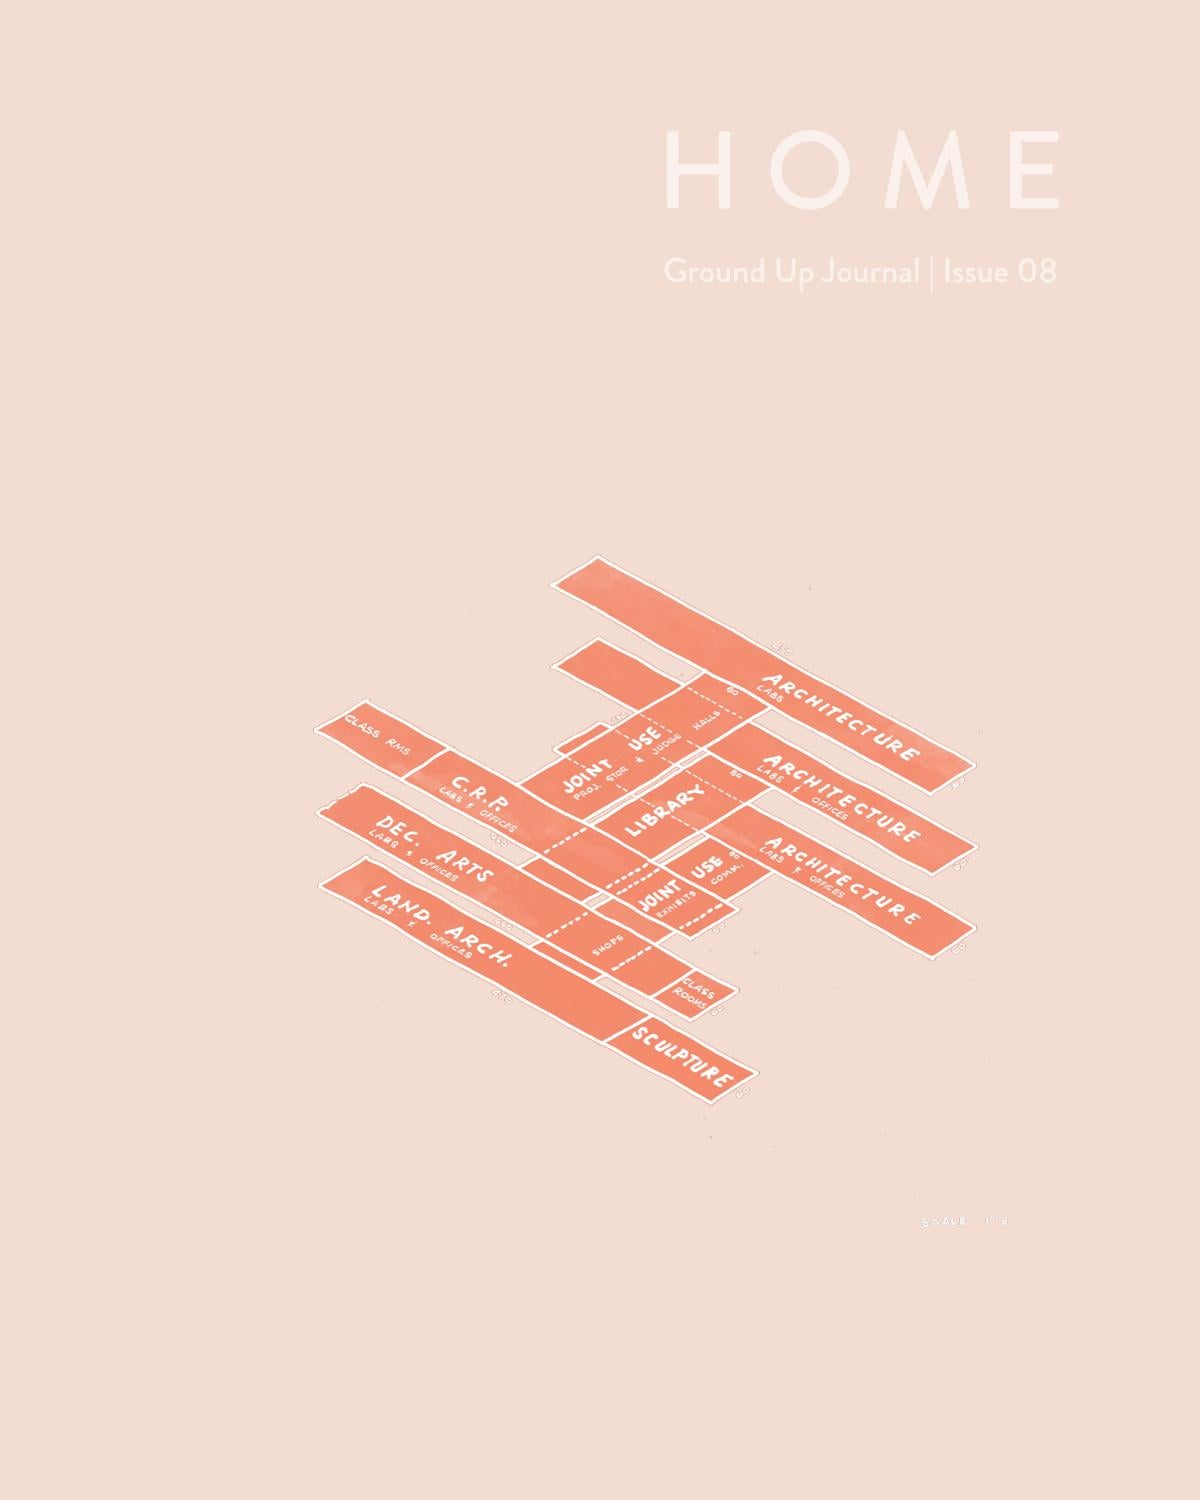 hight resolution of ground up issue 08 home